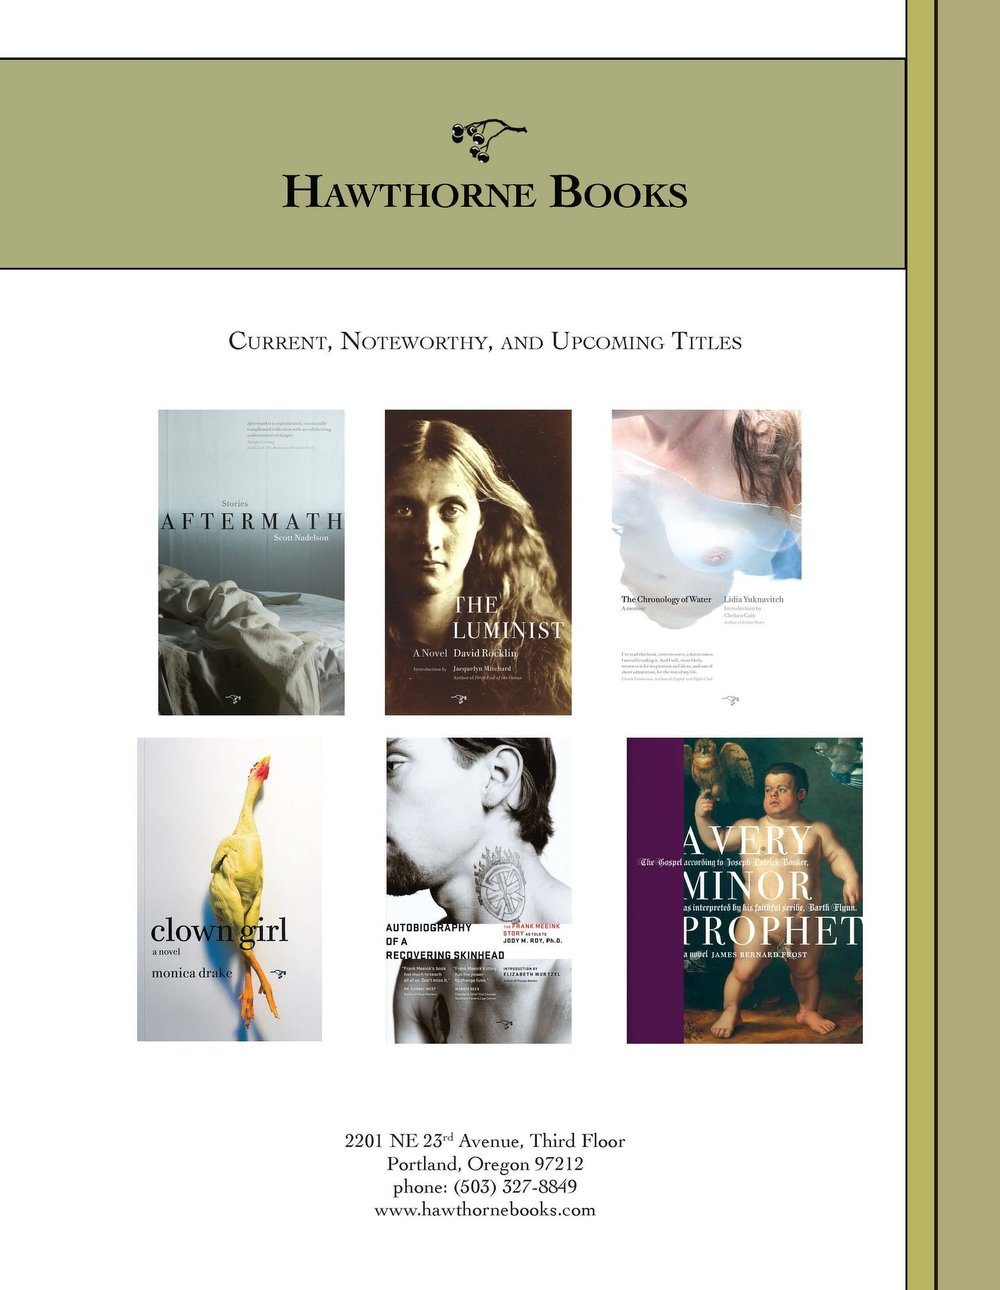 Catalog of current, noteworthy, and upcoming titles for Hawthorne Books (2011)